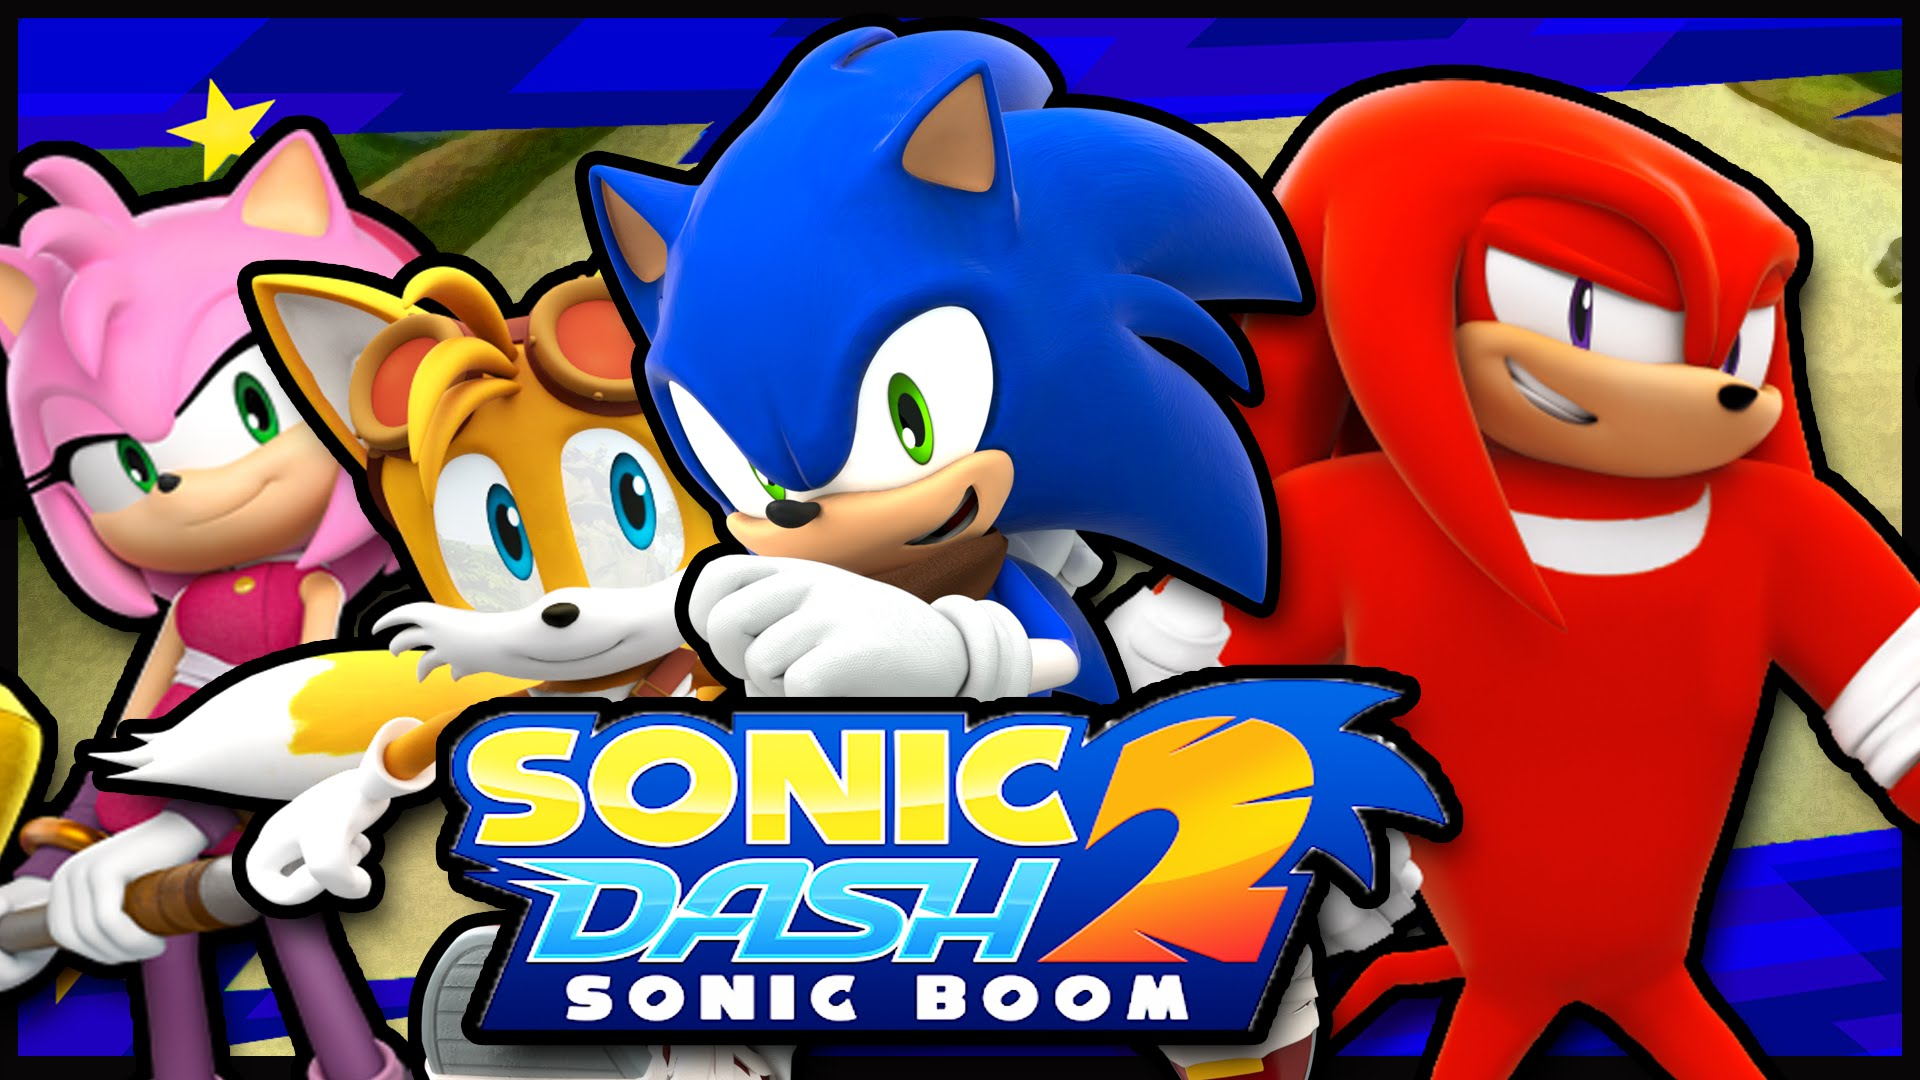 Photo of Sonic Dash 2 is now available worldwide for iOS users